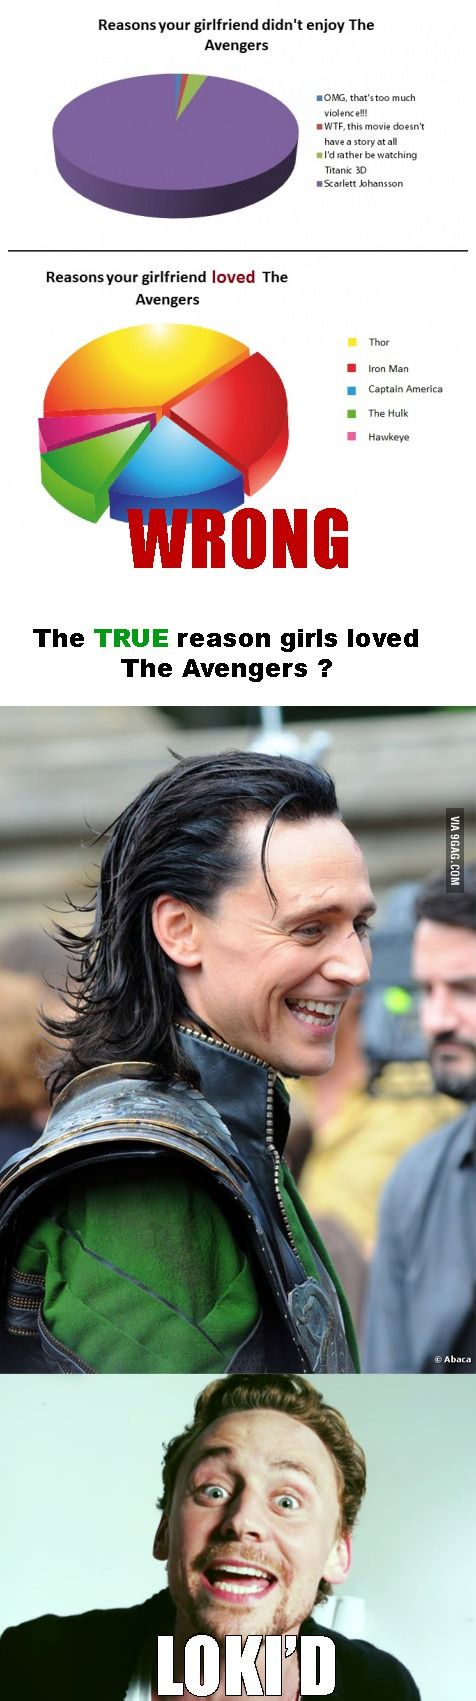 JUST YES. And Iron man..<> BE MY FRIEND YES LOKI AND IRON MAN JUST YES. I mean it was a good movie and all.. BUT LOOK AT HIS EYES ♥